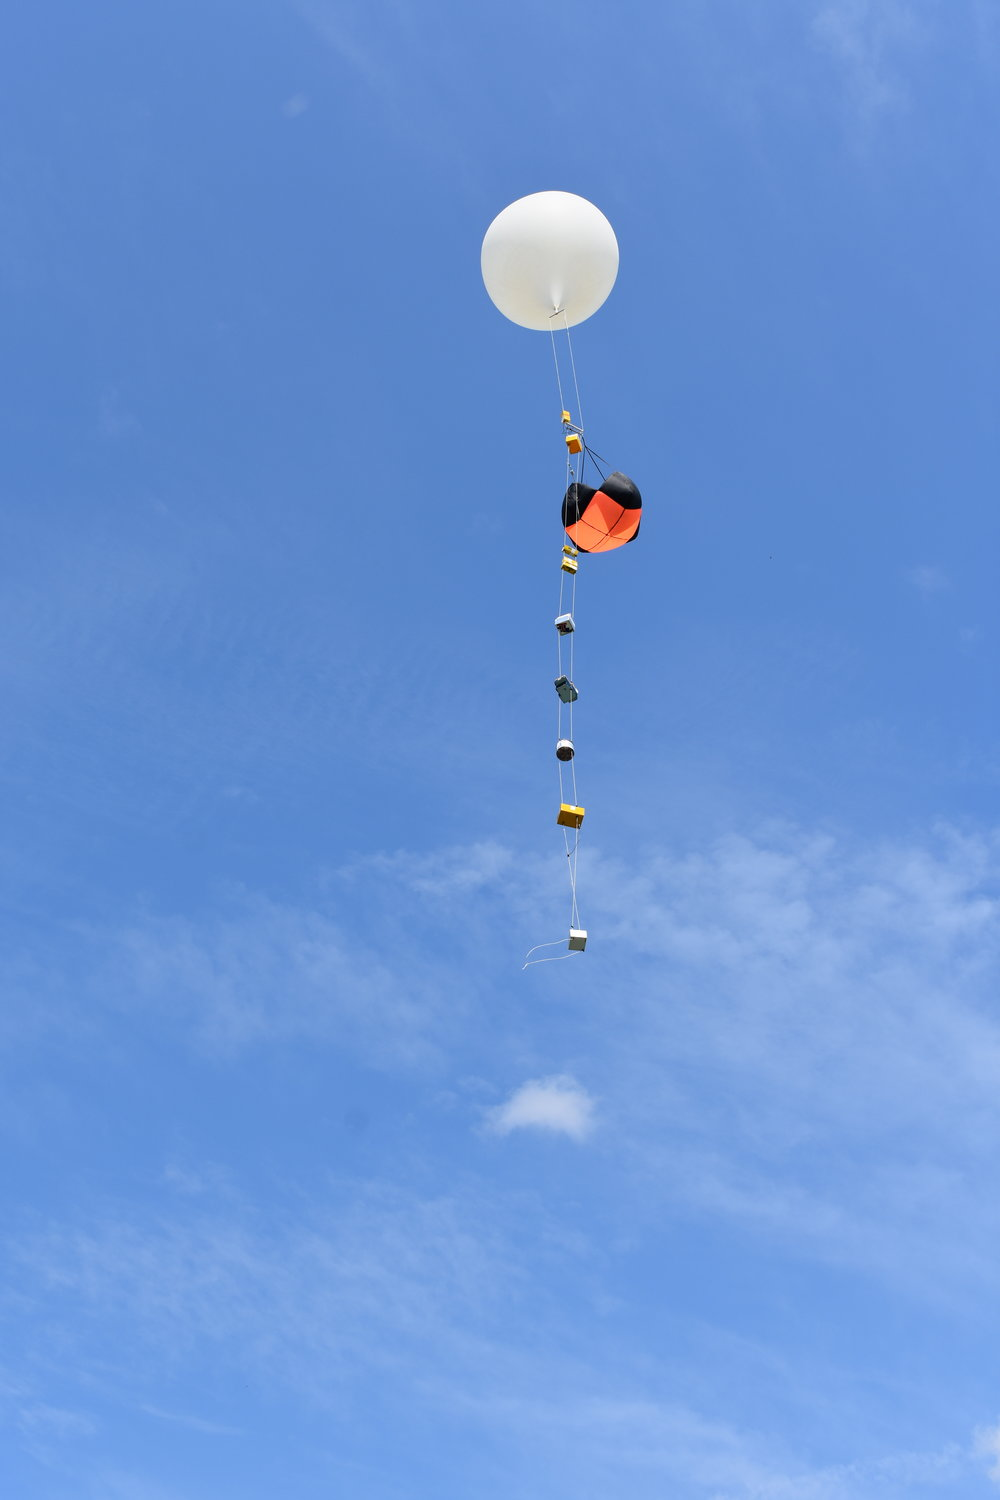 An LSU weather balloon launched in Carbondale, IL to monitor the 2017 eclipse. Credit: Nicki Button.